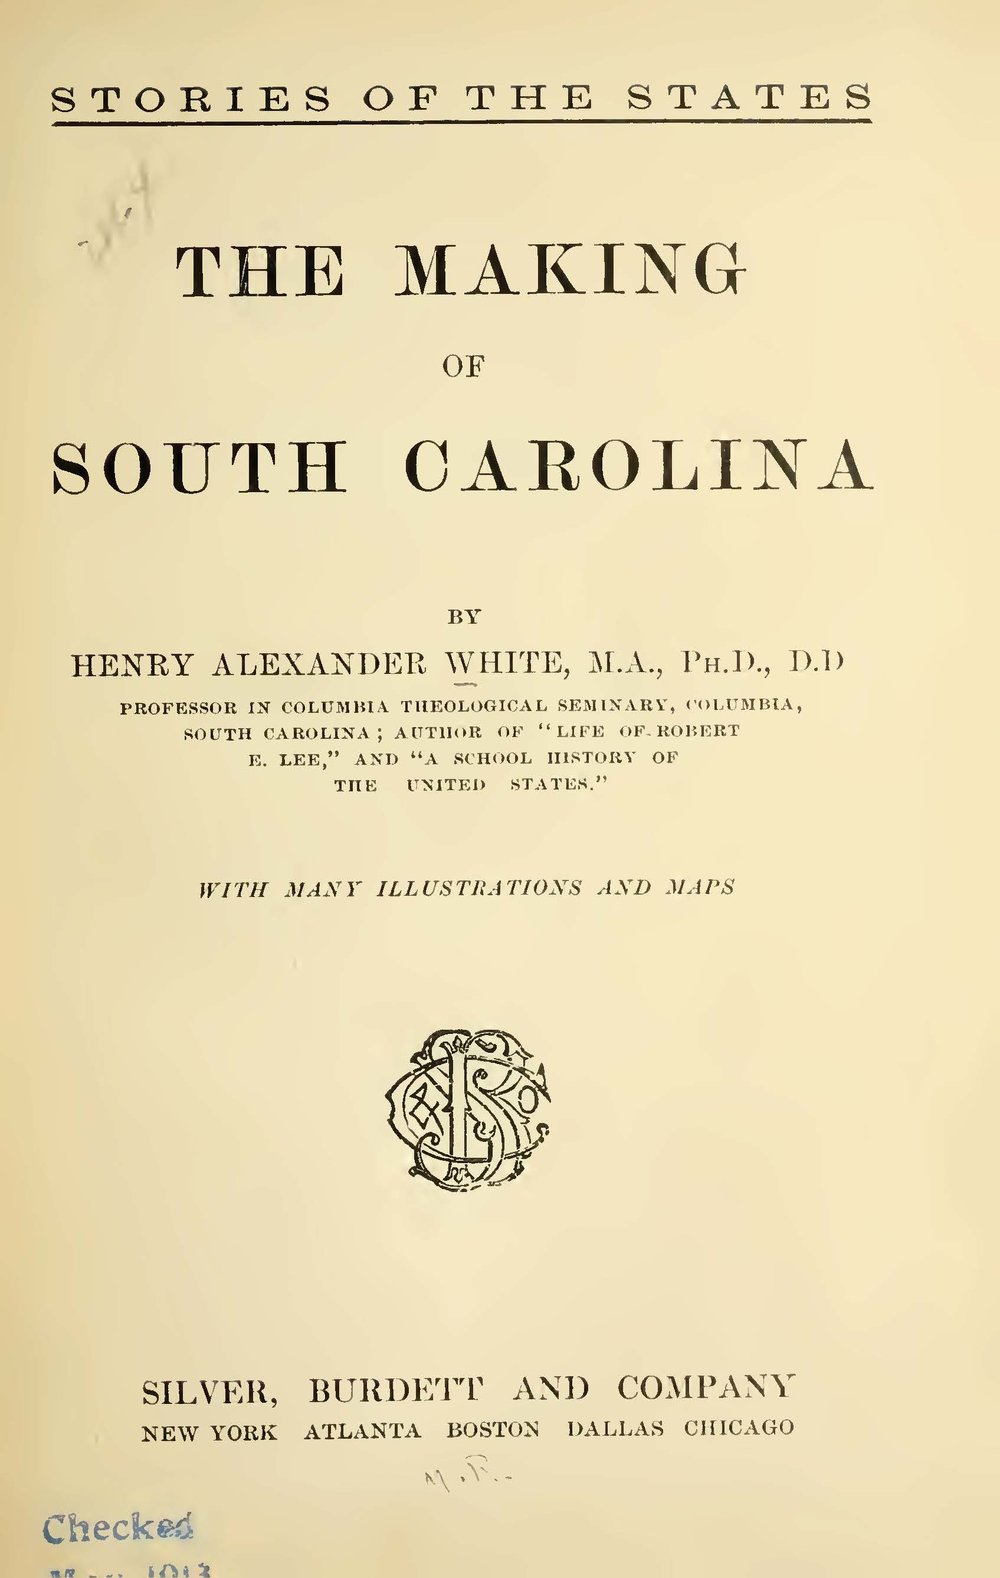 White, Henry Alexander, The Making of South Carolina Title Page.jpg